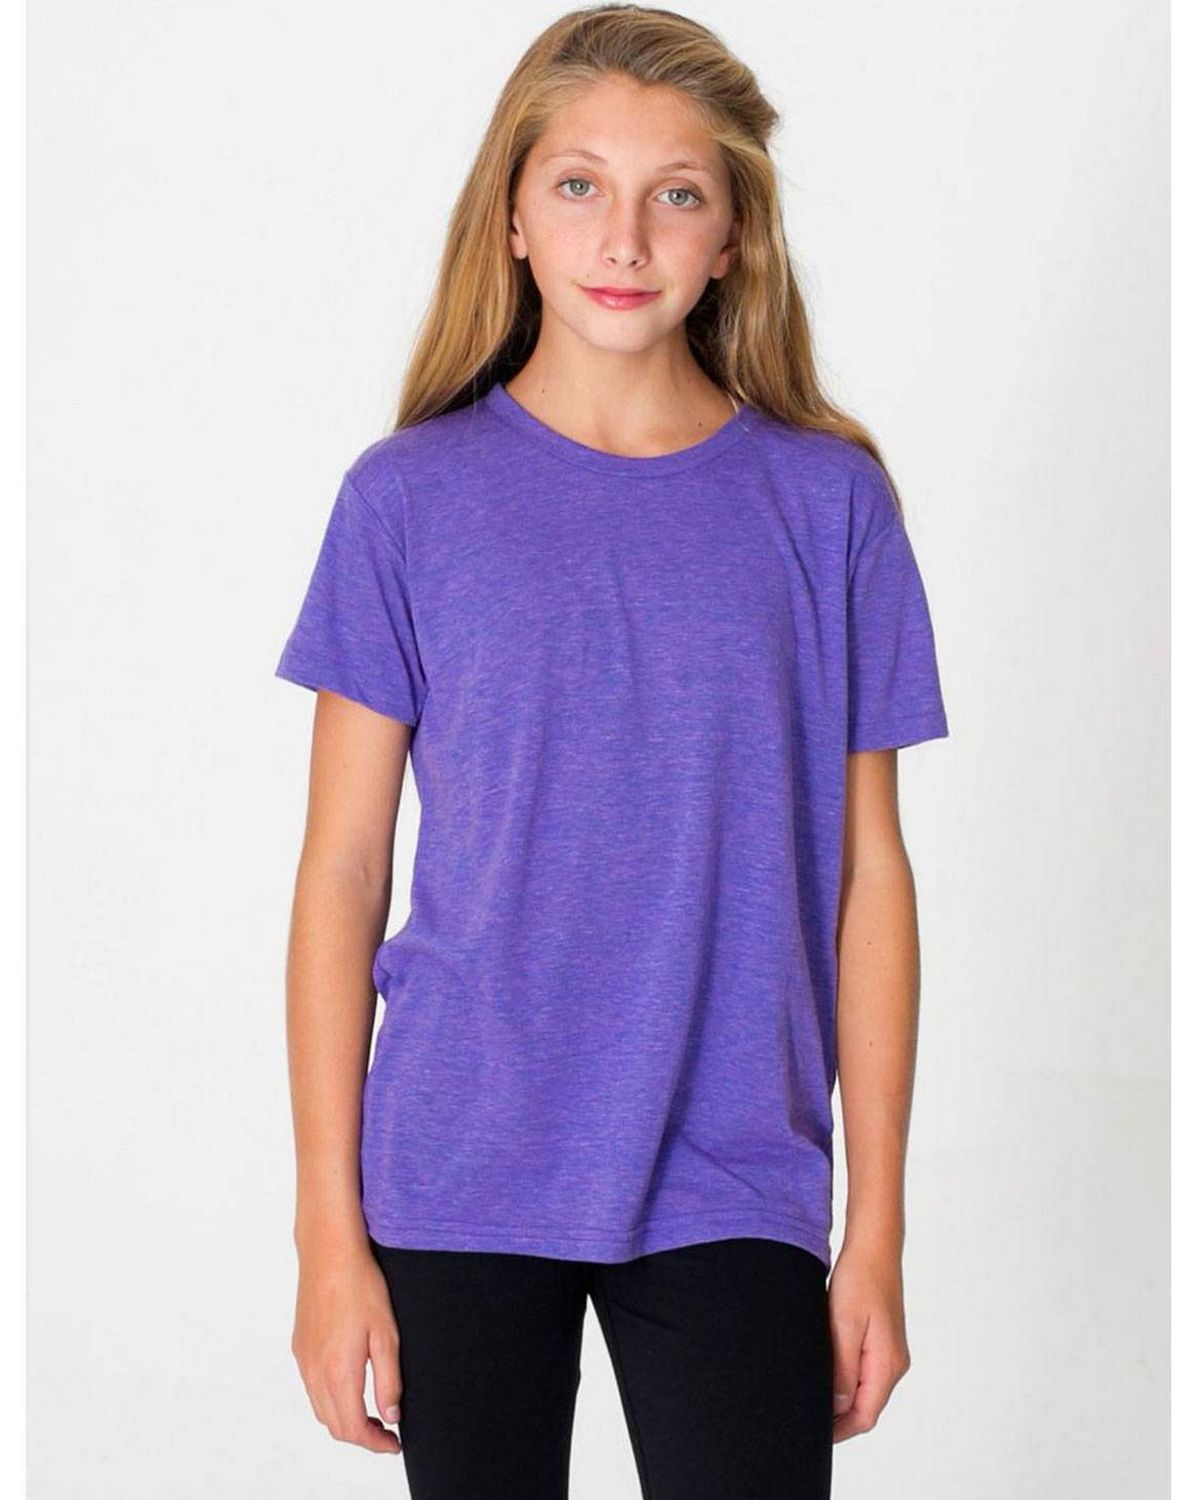 American Apparel TR201W Youth Triblend T-Shirt